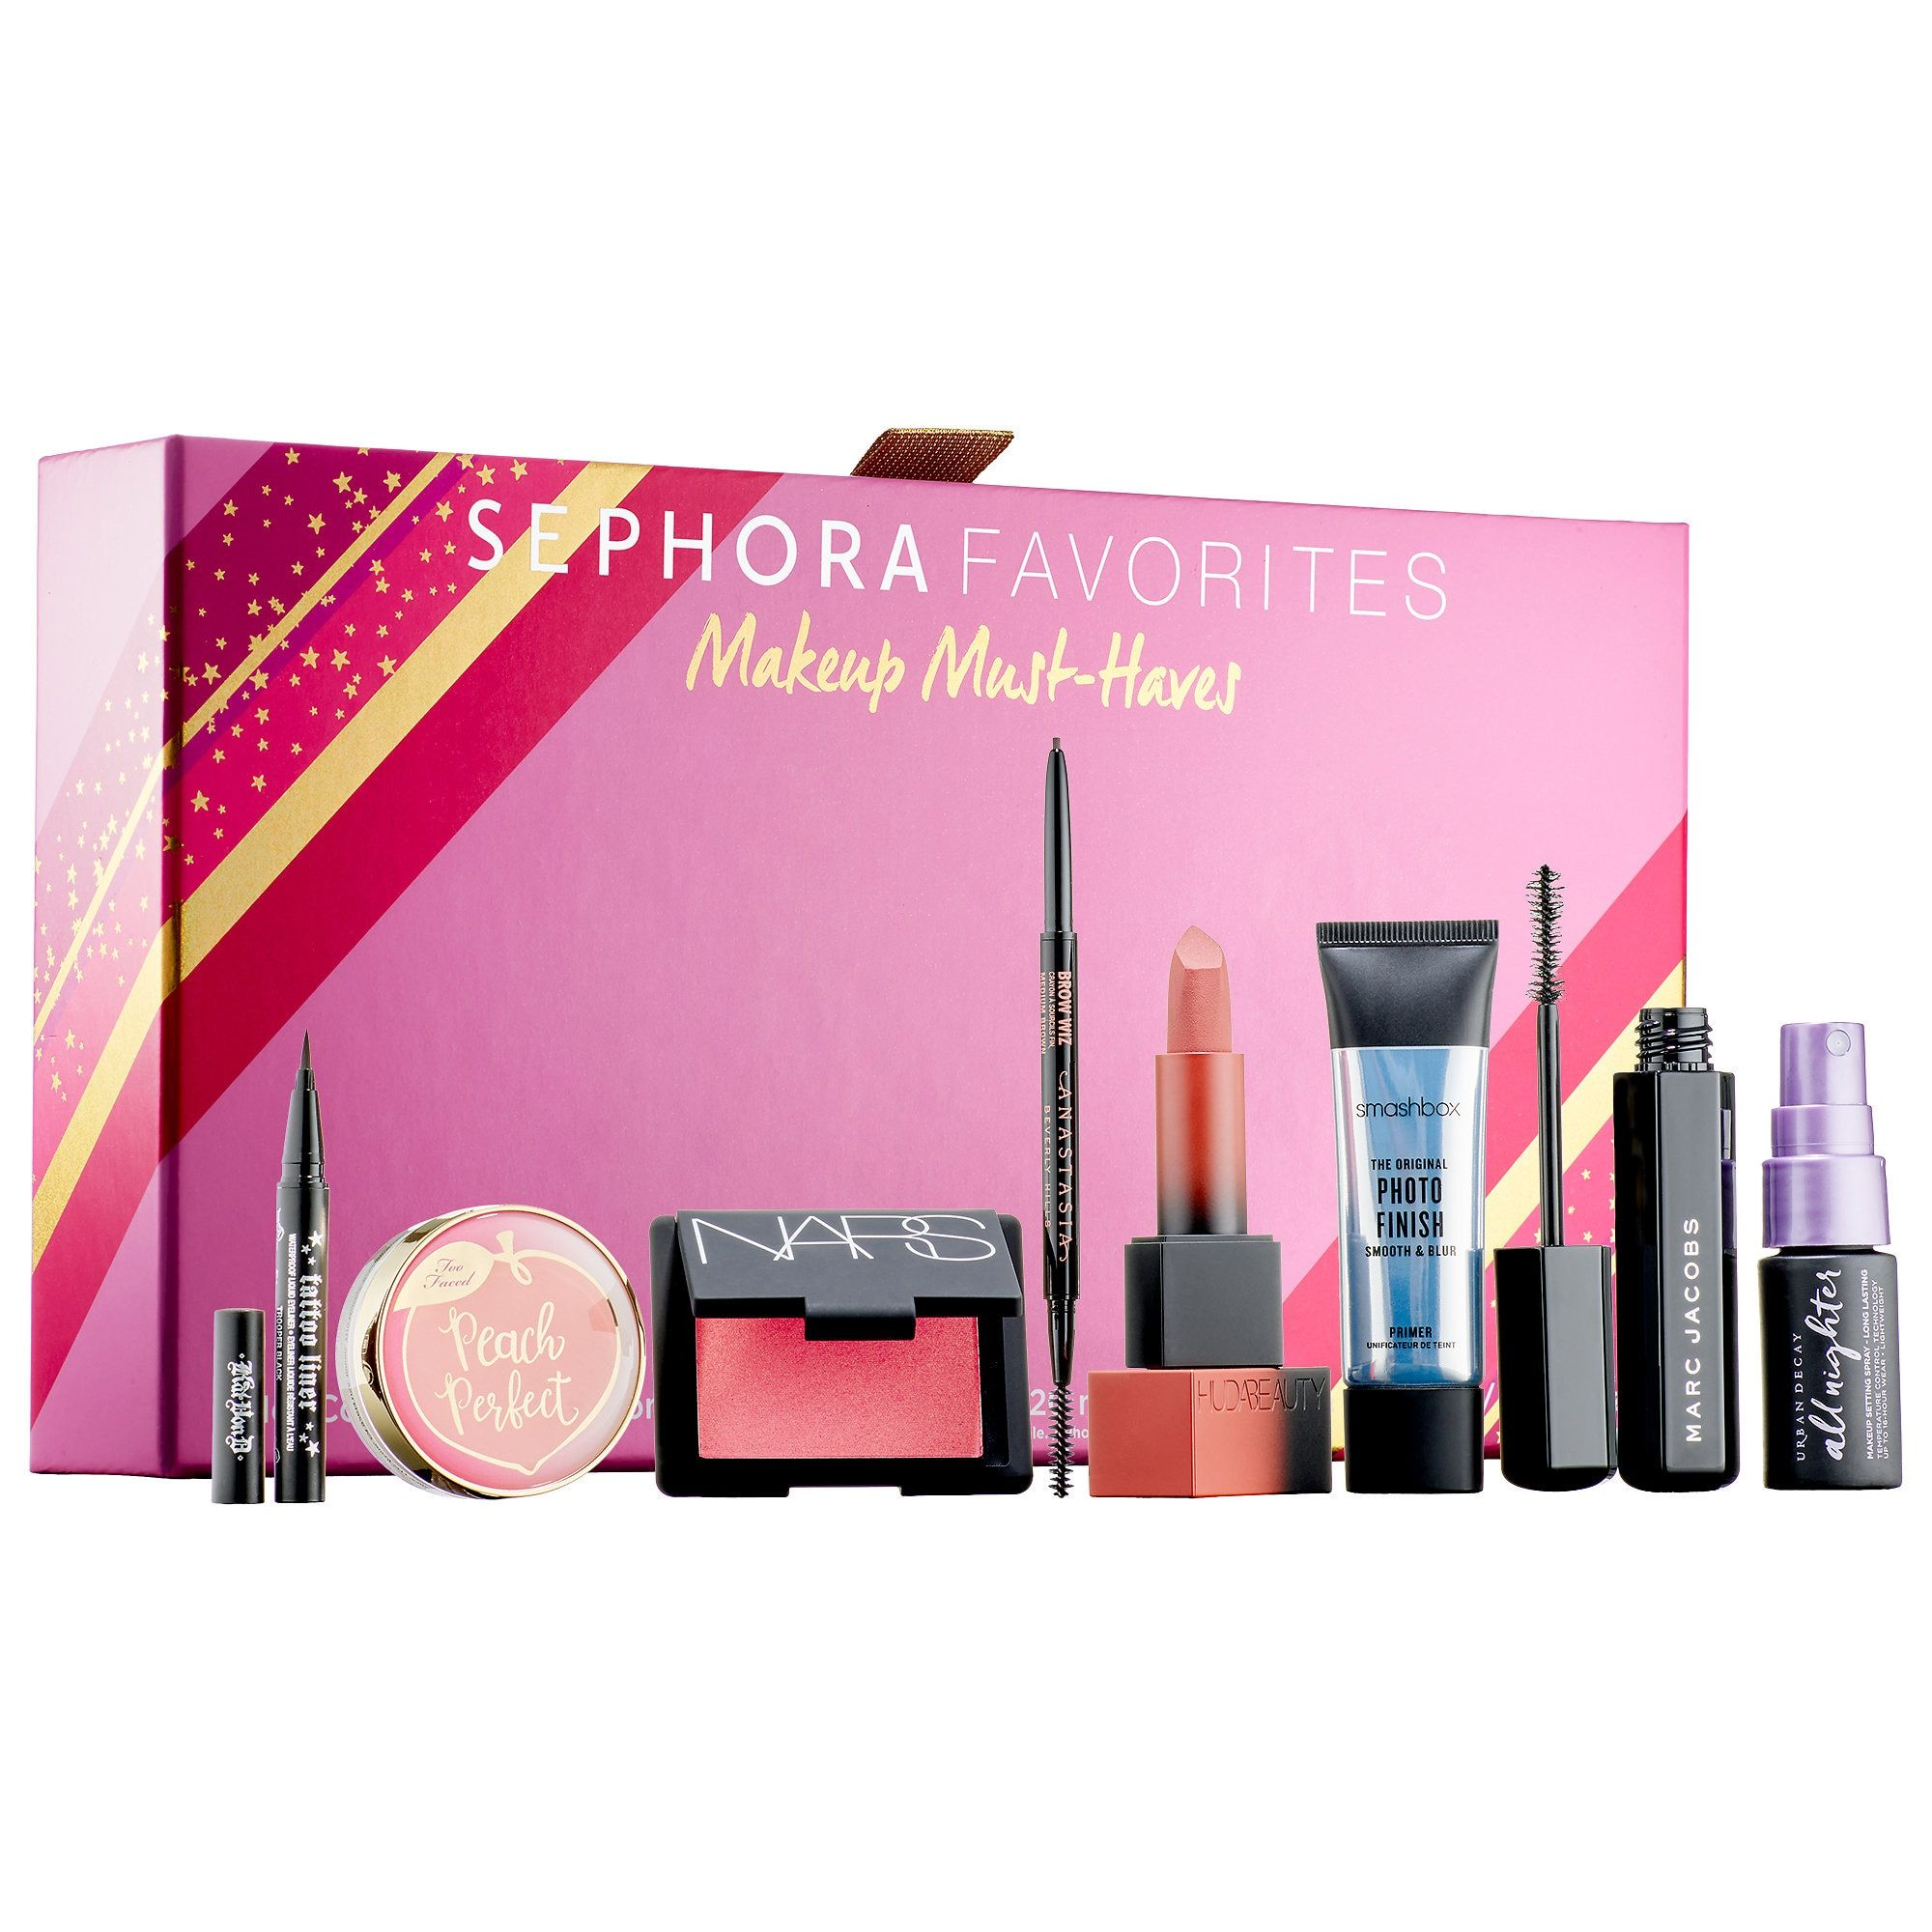 12 Best Makeup Gift Sets 2021 Top Beauty Gift Set Ideas For Her